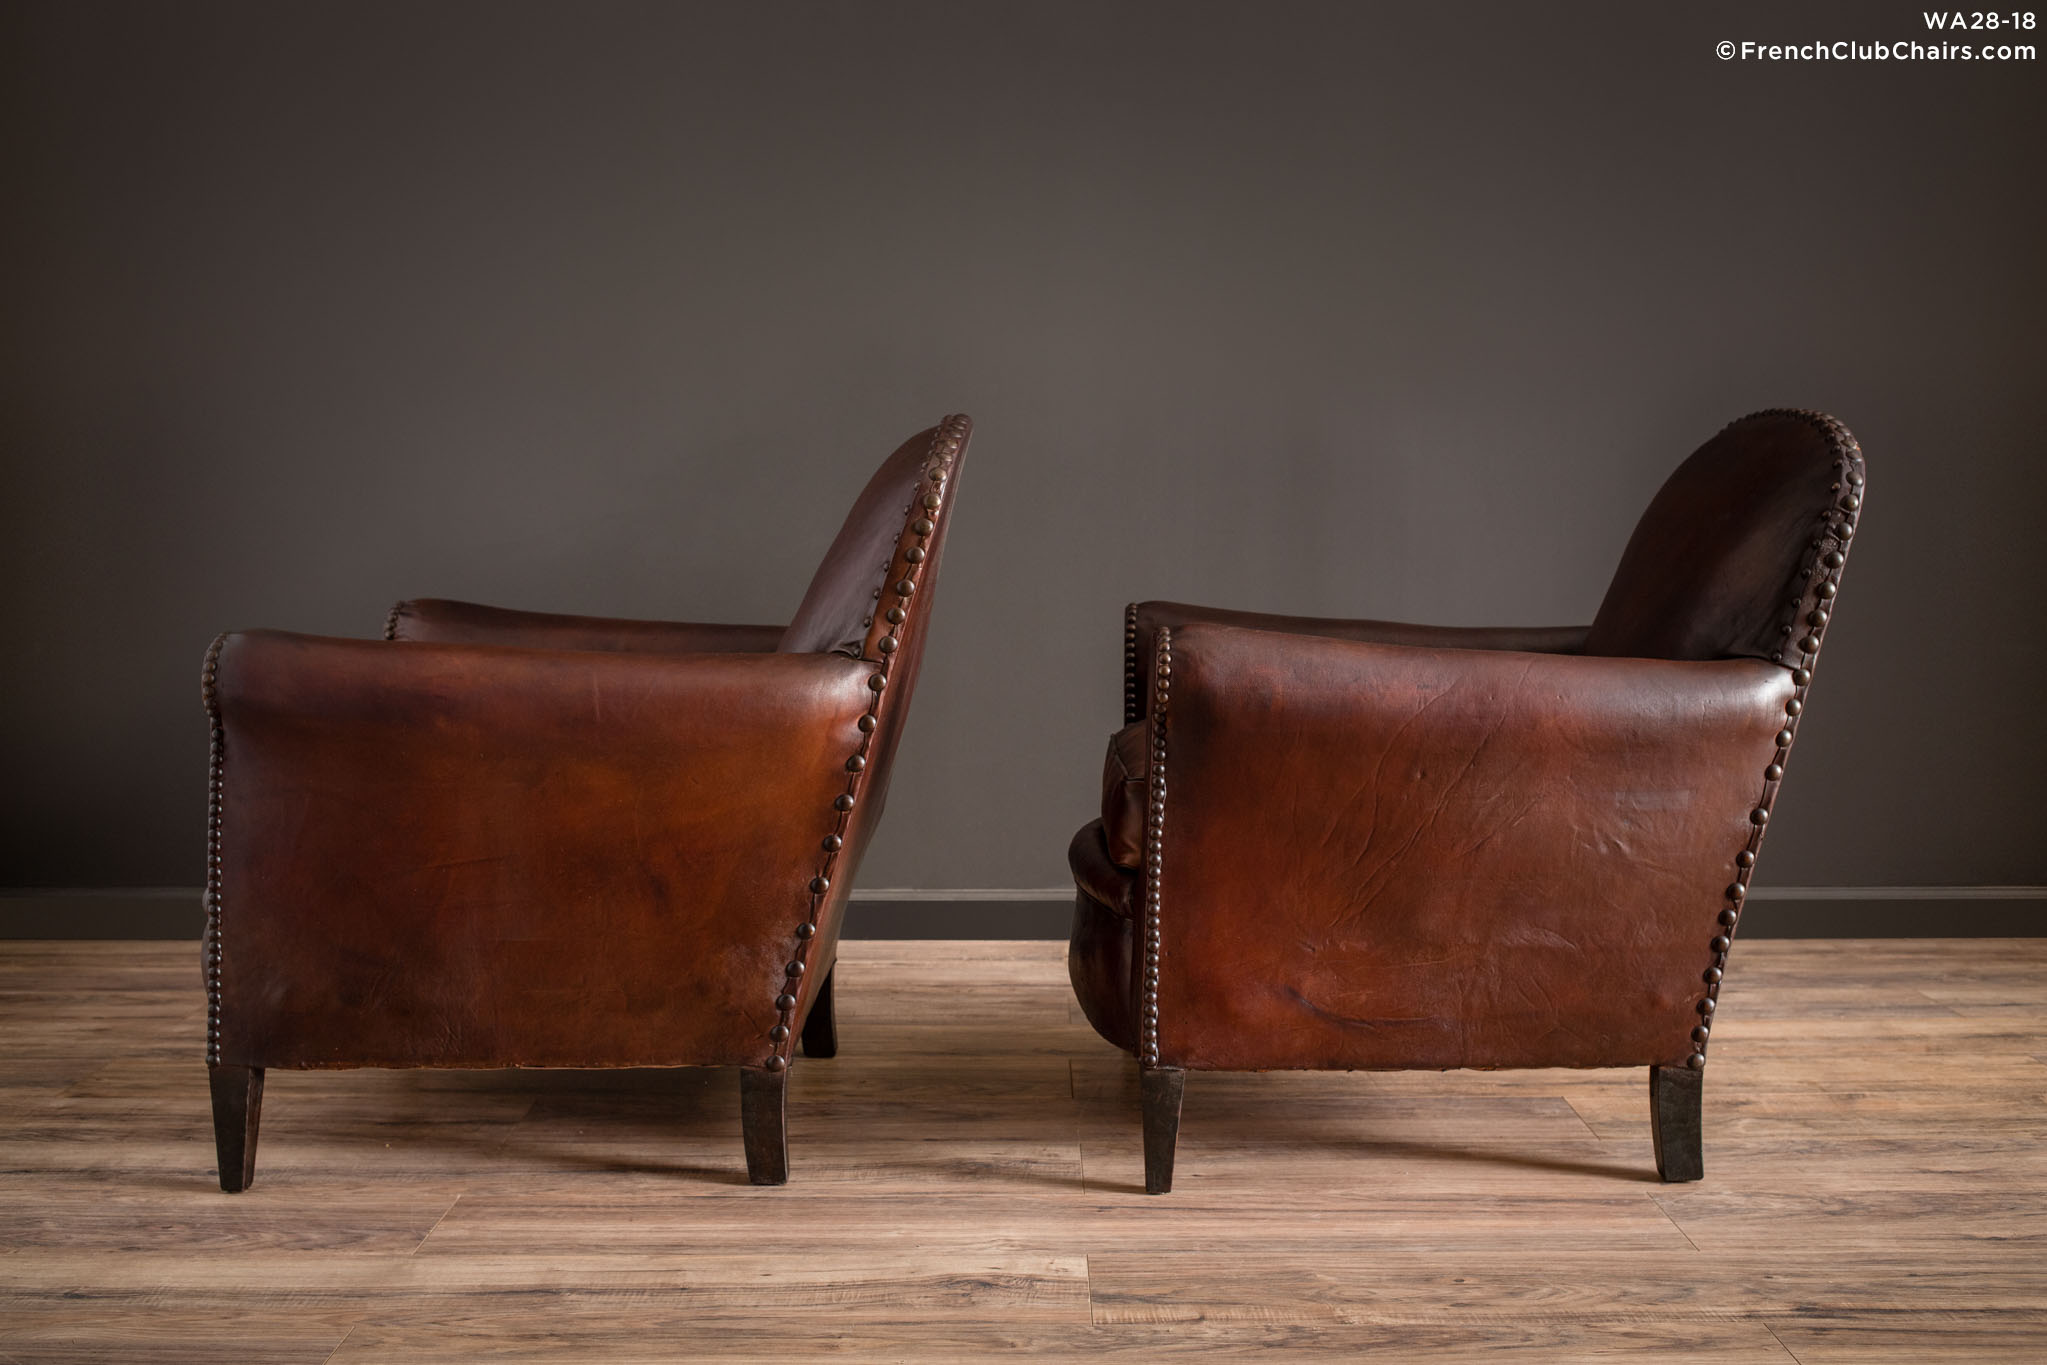 WA_28-18_Rambouillet_Dark_Library_Pair_R_4LT1-williams-antiks-leather-french-club-chair-wa_fcccom